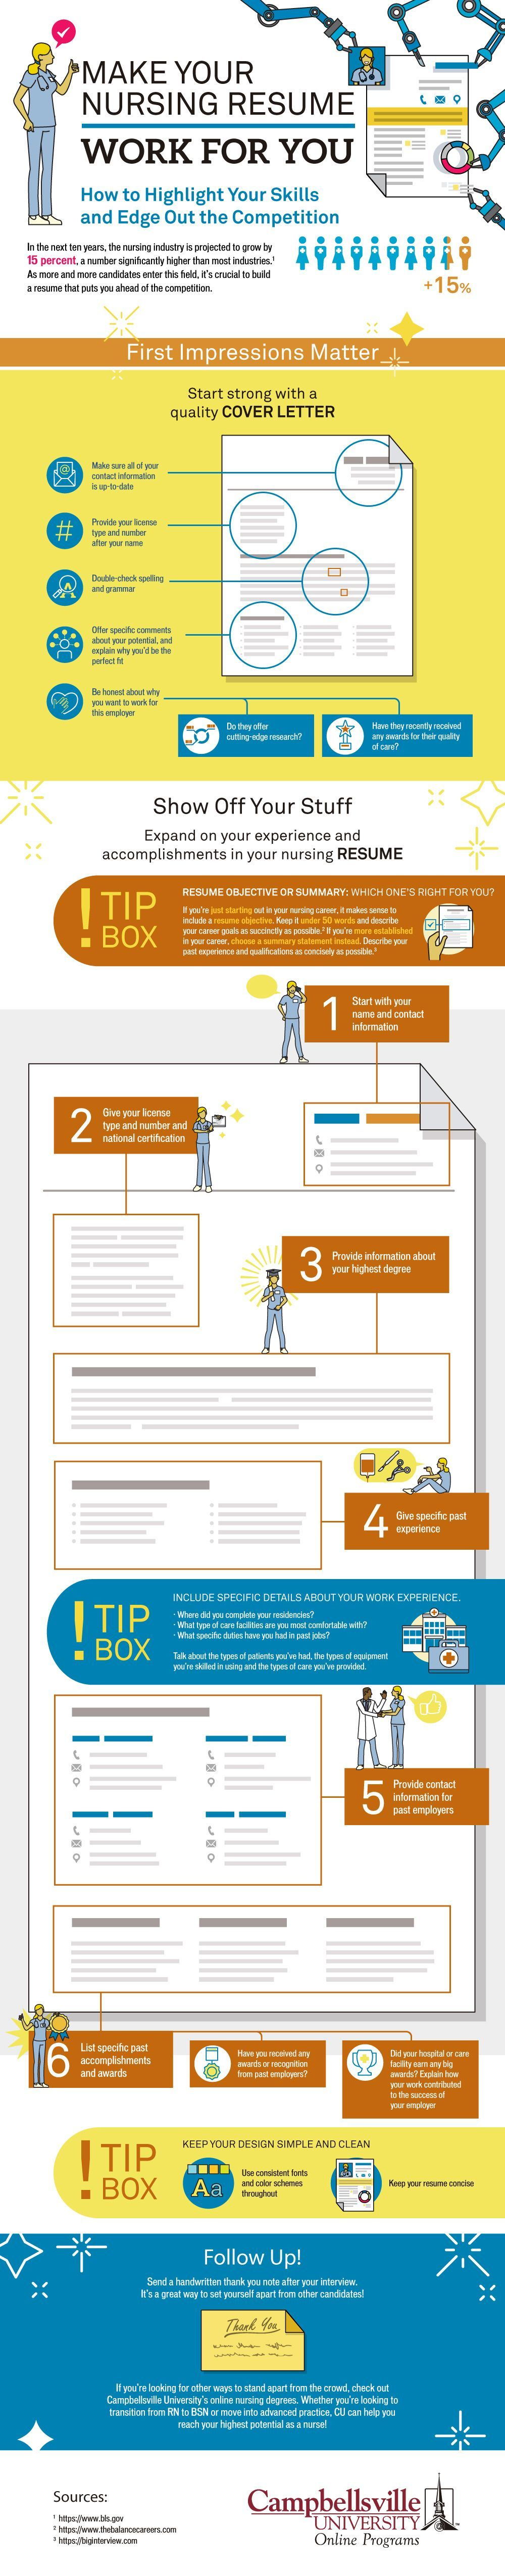 Nursing resume tips infographic facts and figures